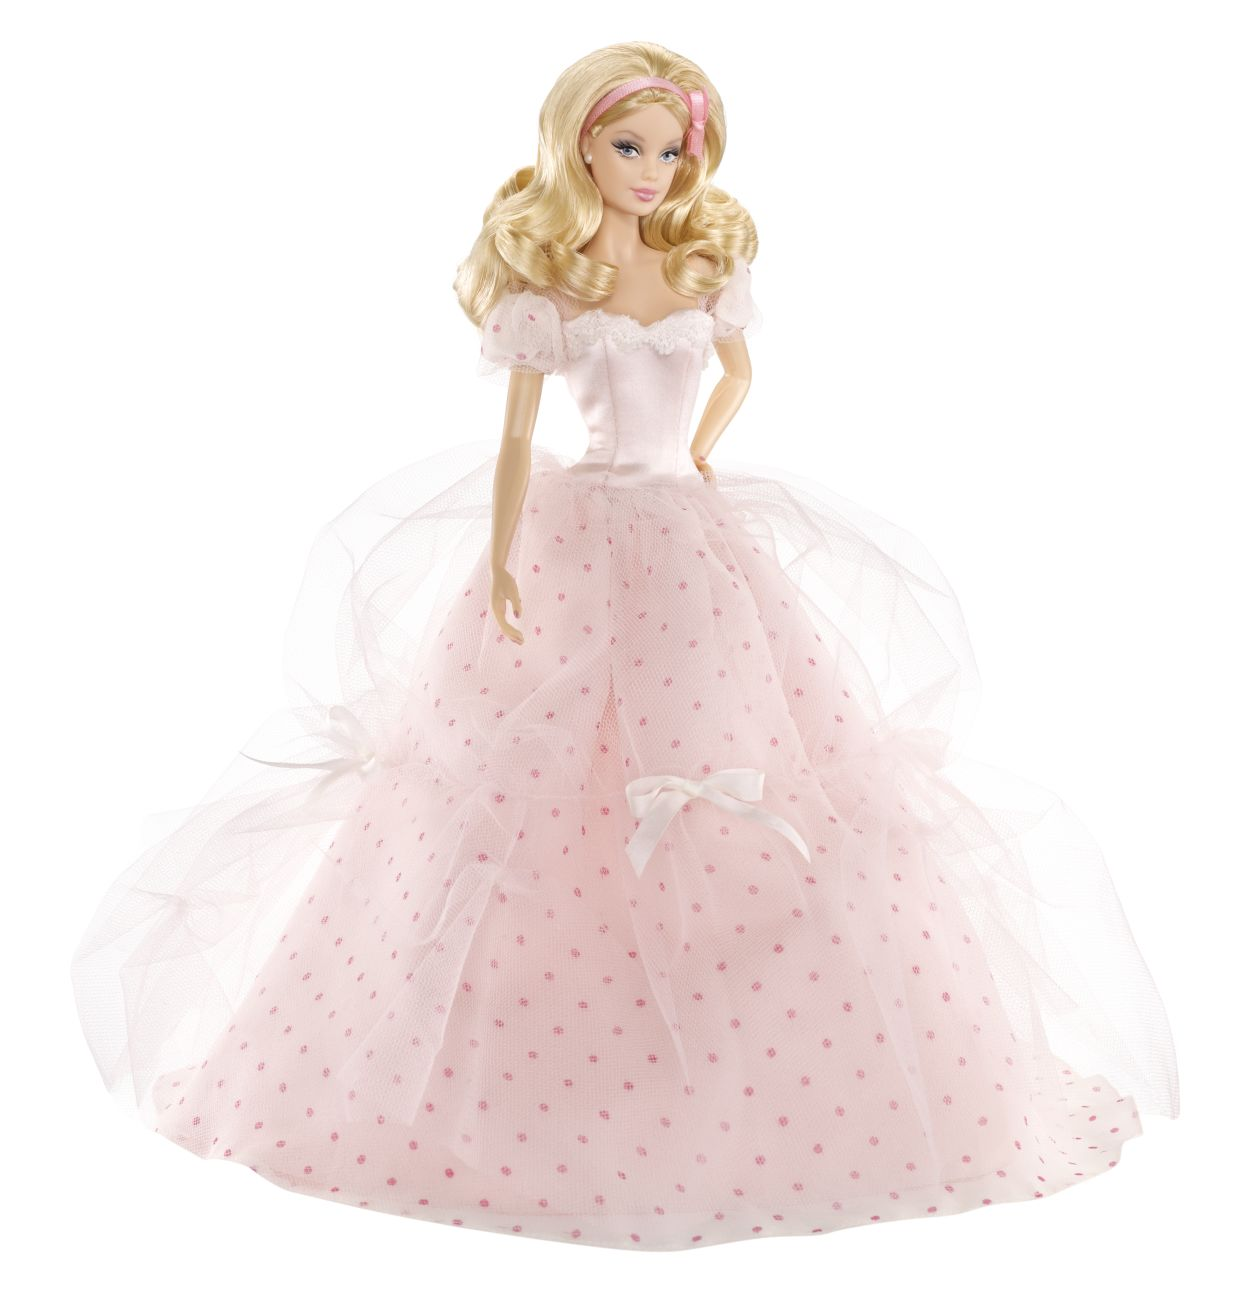 Birthday Wishes Barbie 2013 Collector Barbie